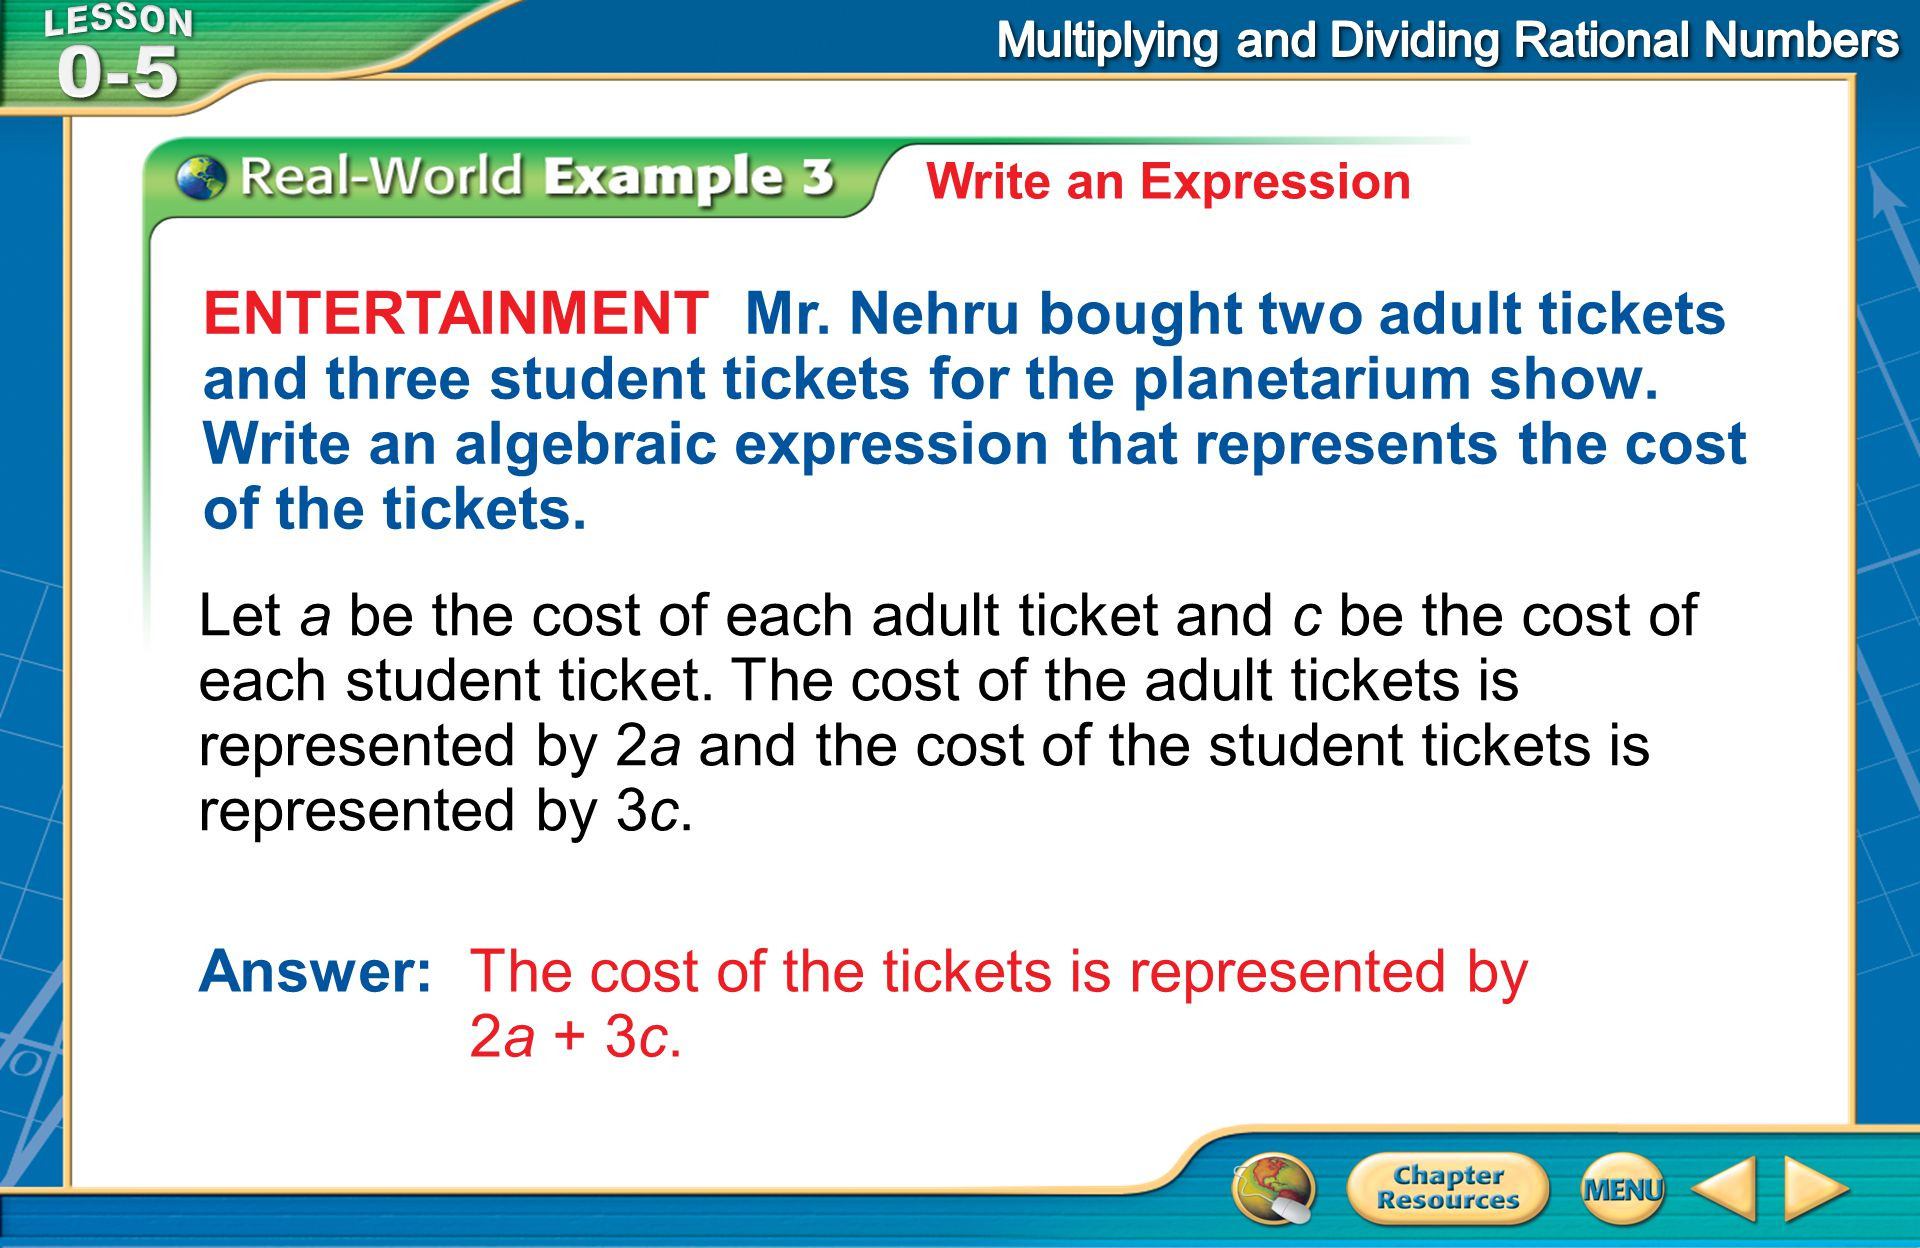 Answer: The cost of the tickets is represented by 2a + 3c.